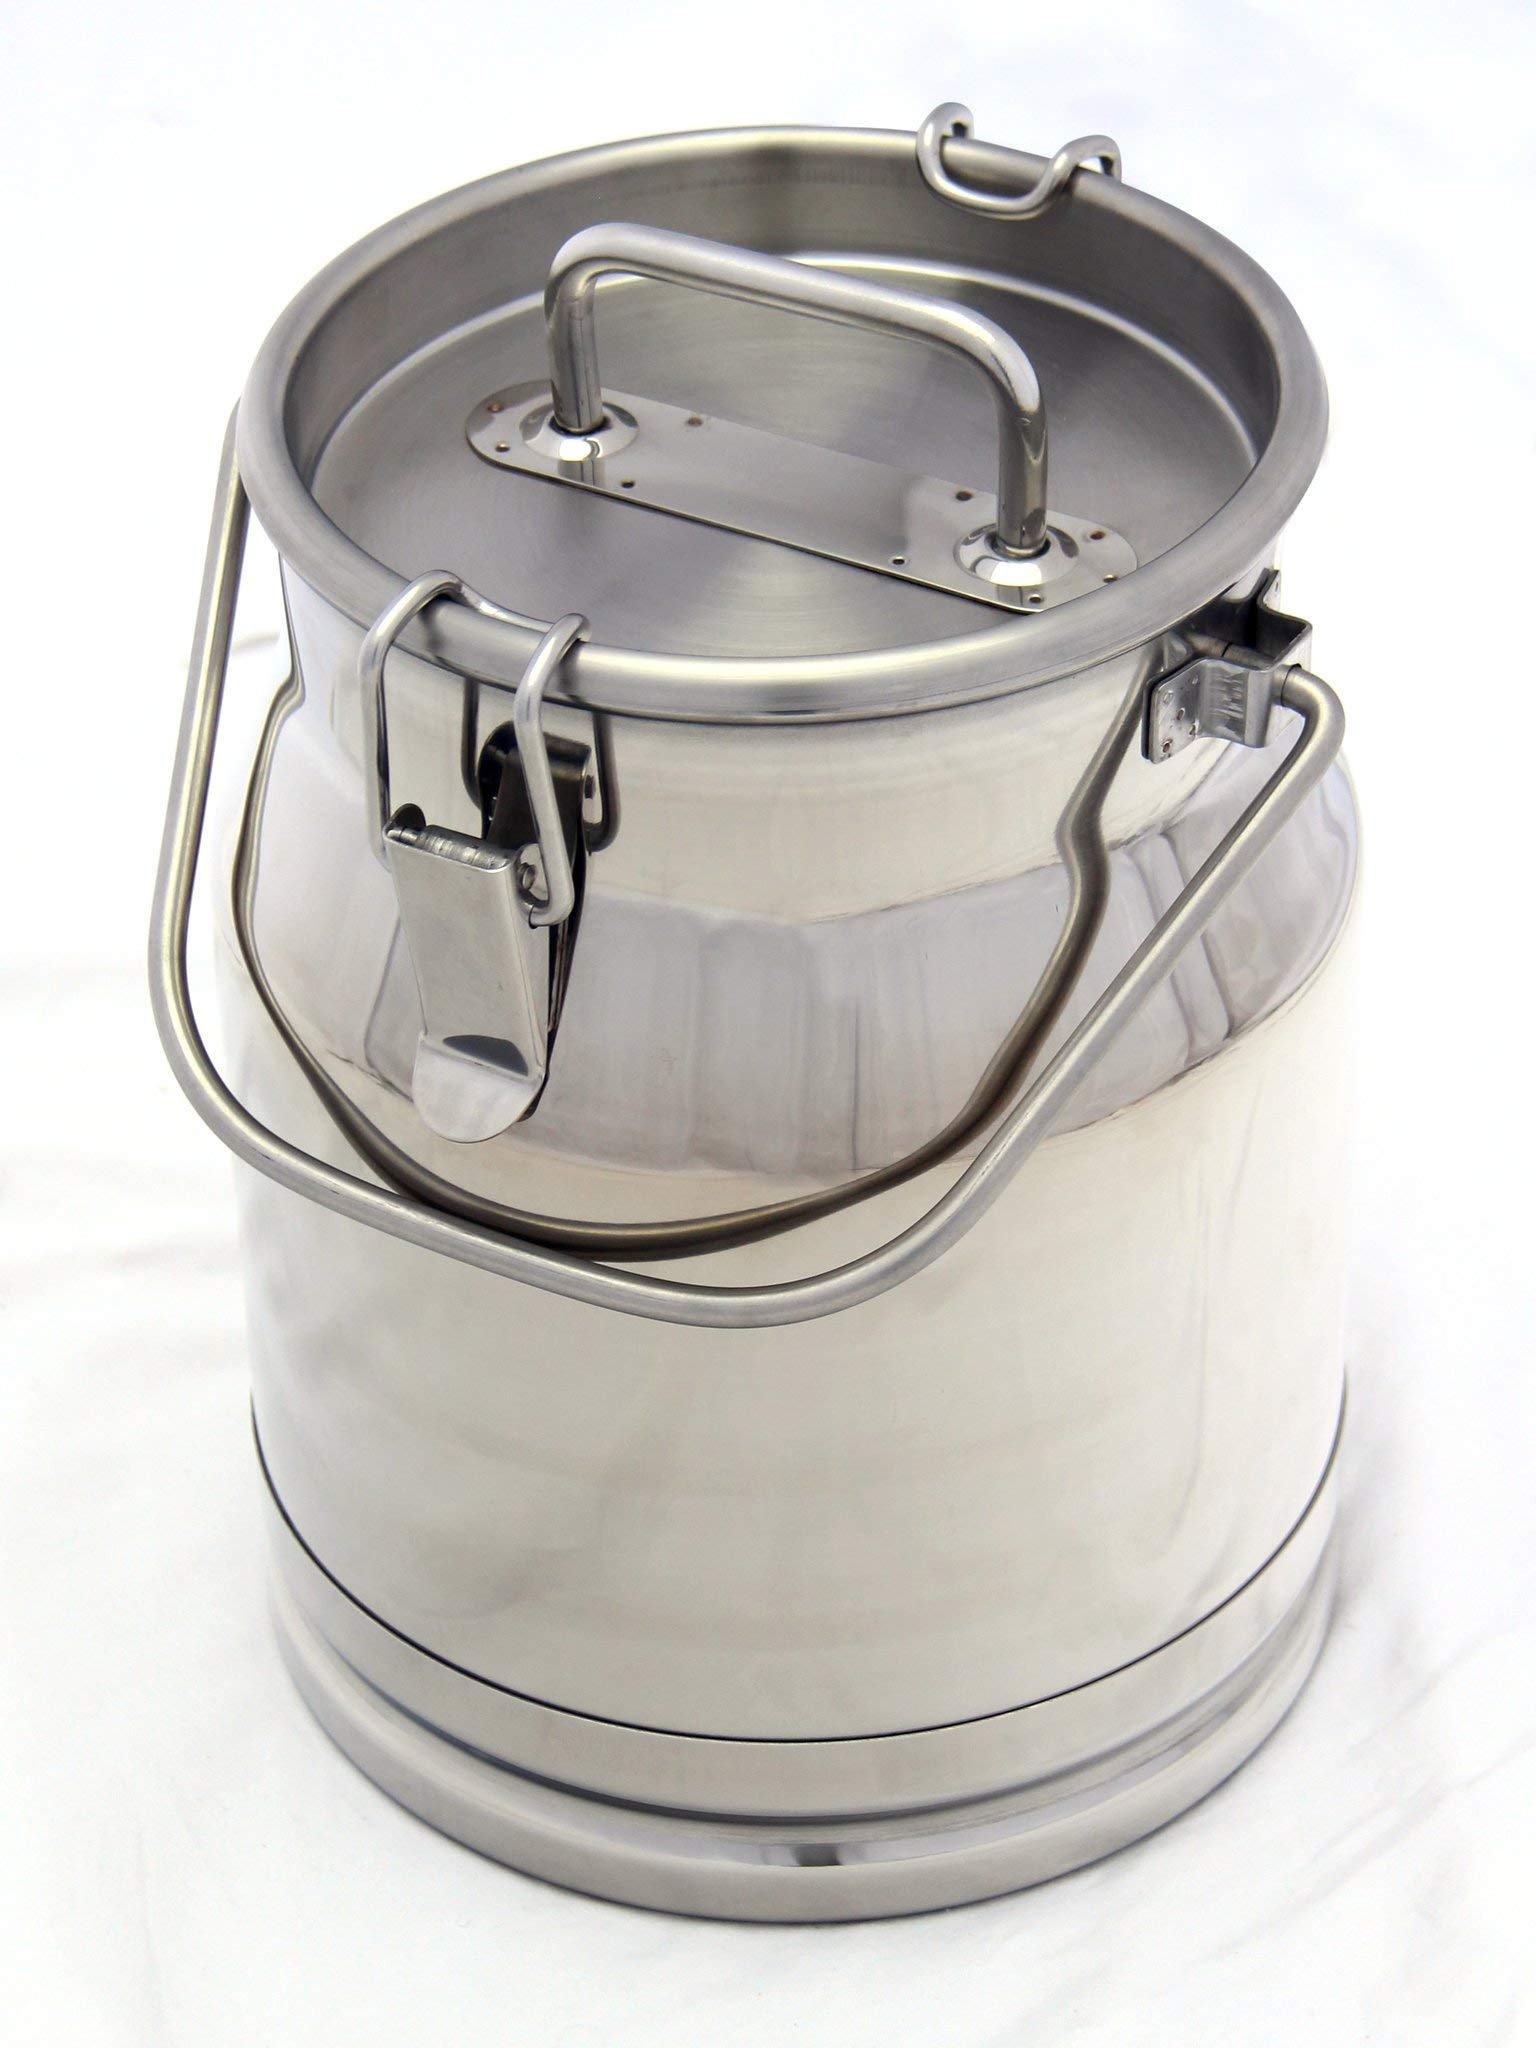 Stainless Steel Milk Transport Cans with Strong, Sealed Lid and Spigot Option (2.6 Gallon, with Spigot)